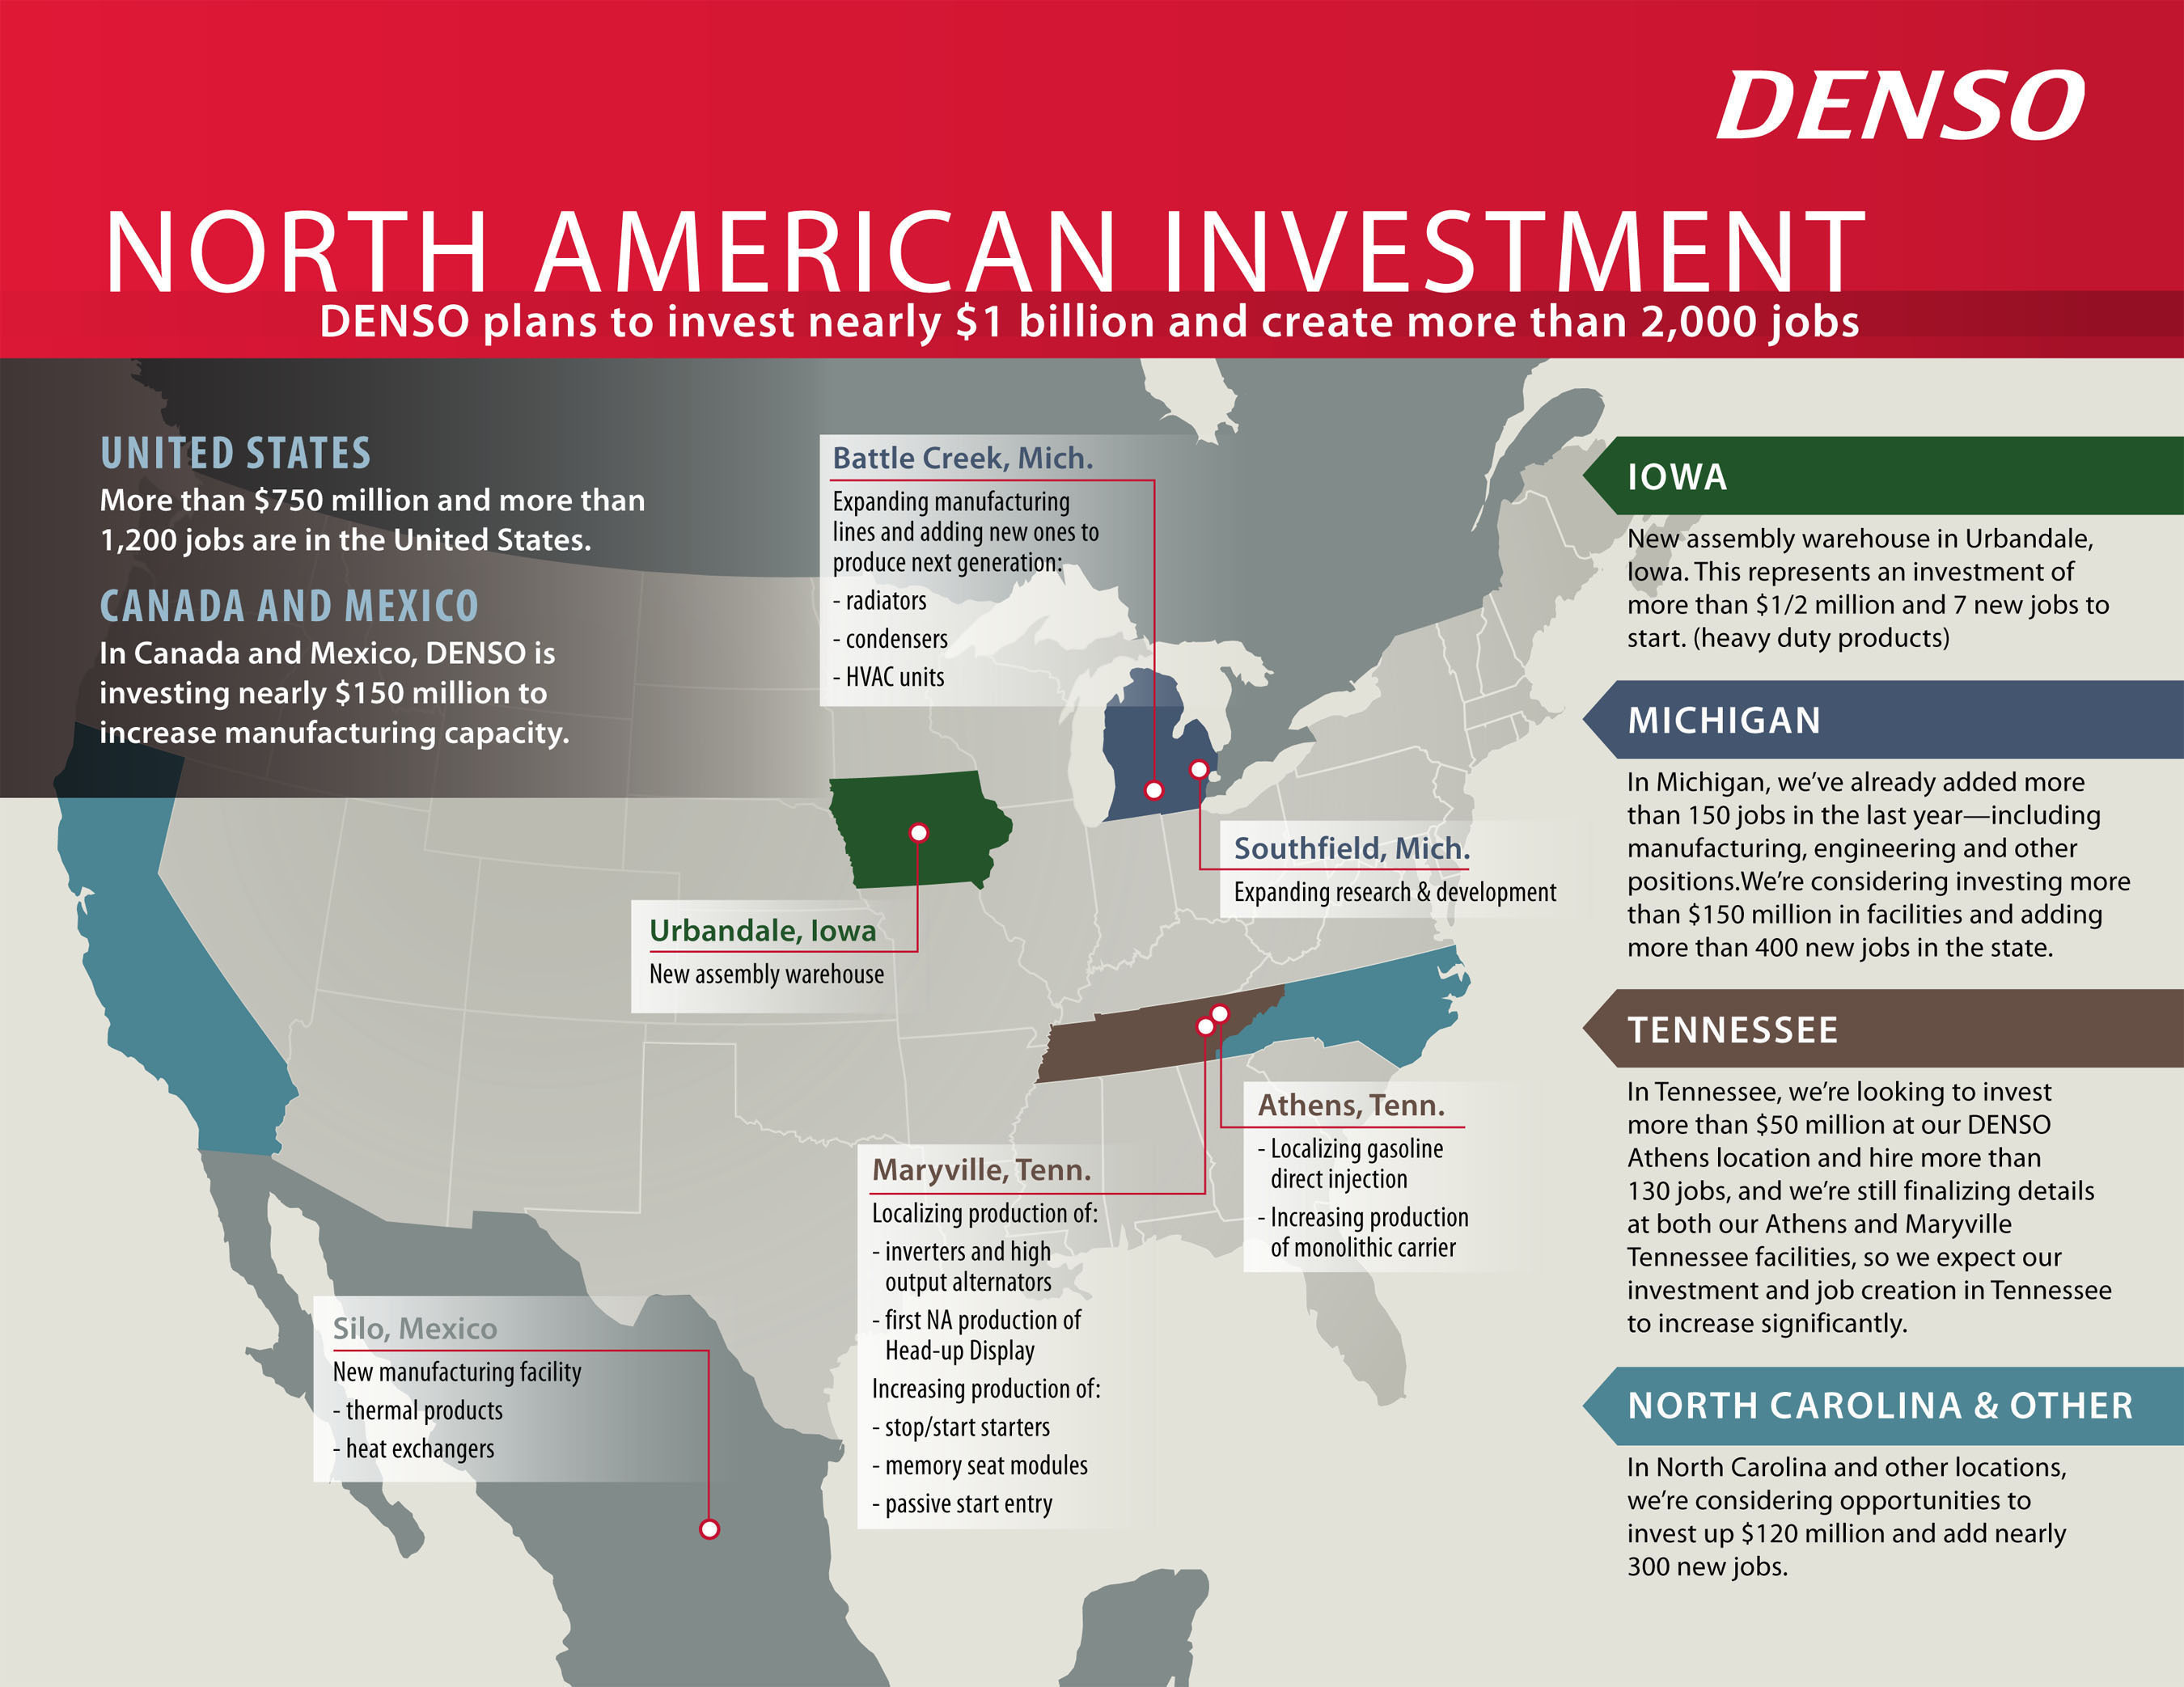 DENSO plans to invest nearly $1 billion and create more than 2,000 jobs in North America.  (PRNewsFoto/DENSO ...